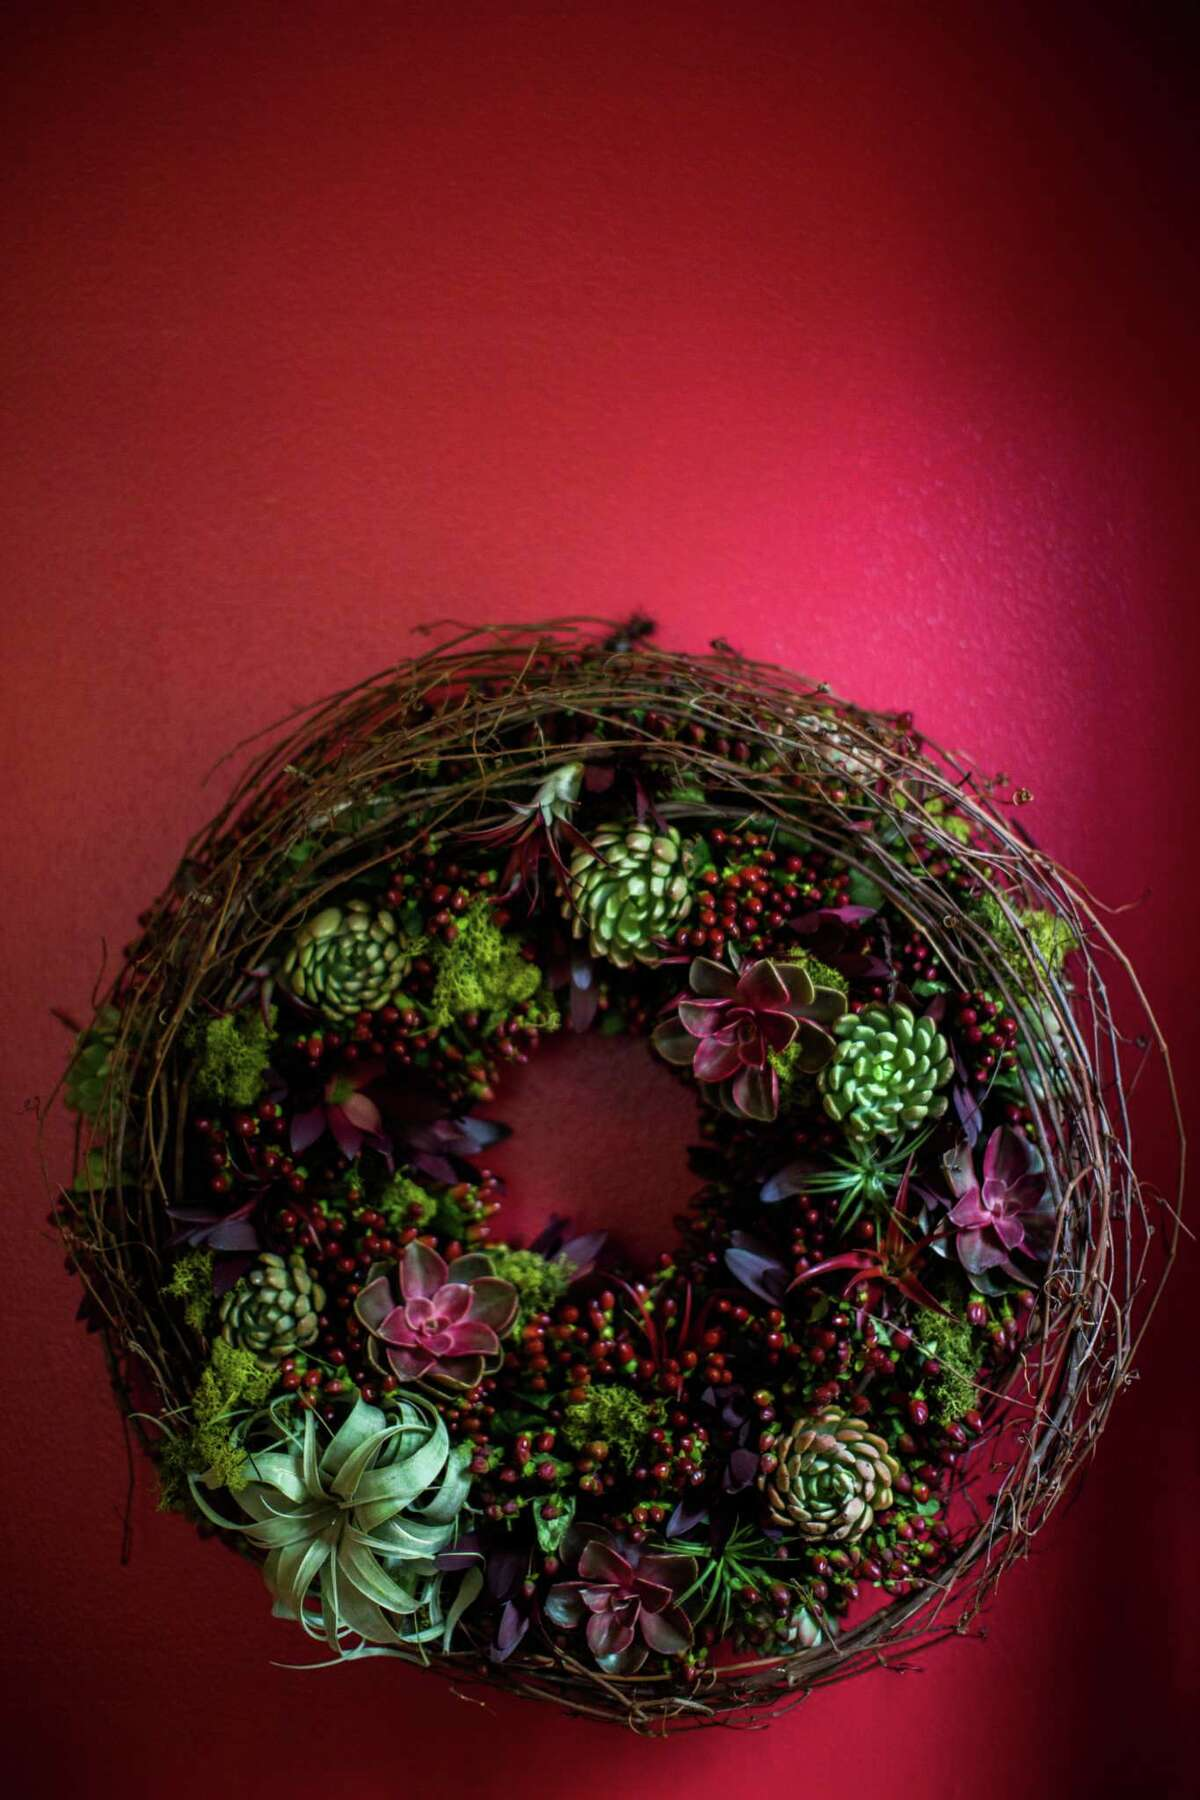 a living succulent wreath, created by H-E-B's new Blooms Design Studio, could ADd an element of surprise to your holiday DÉcor.